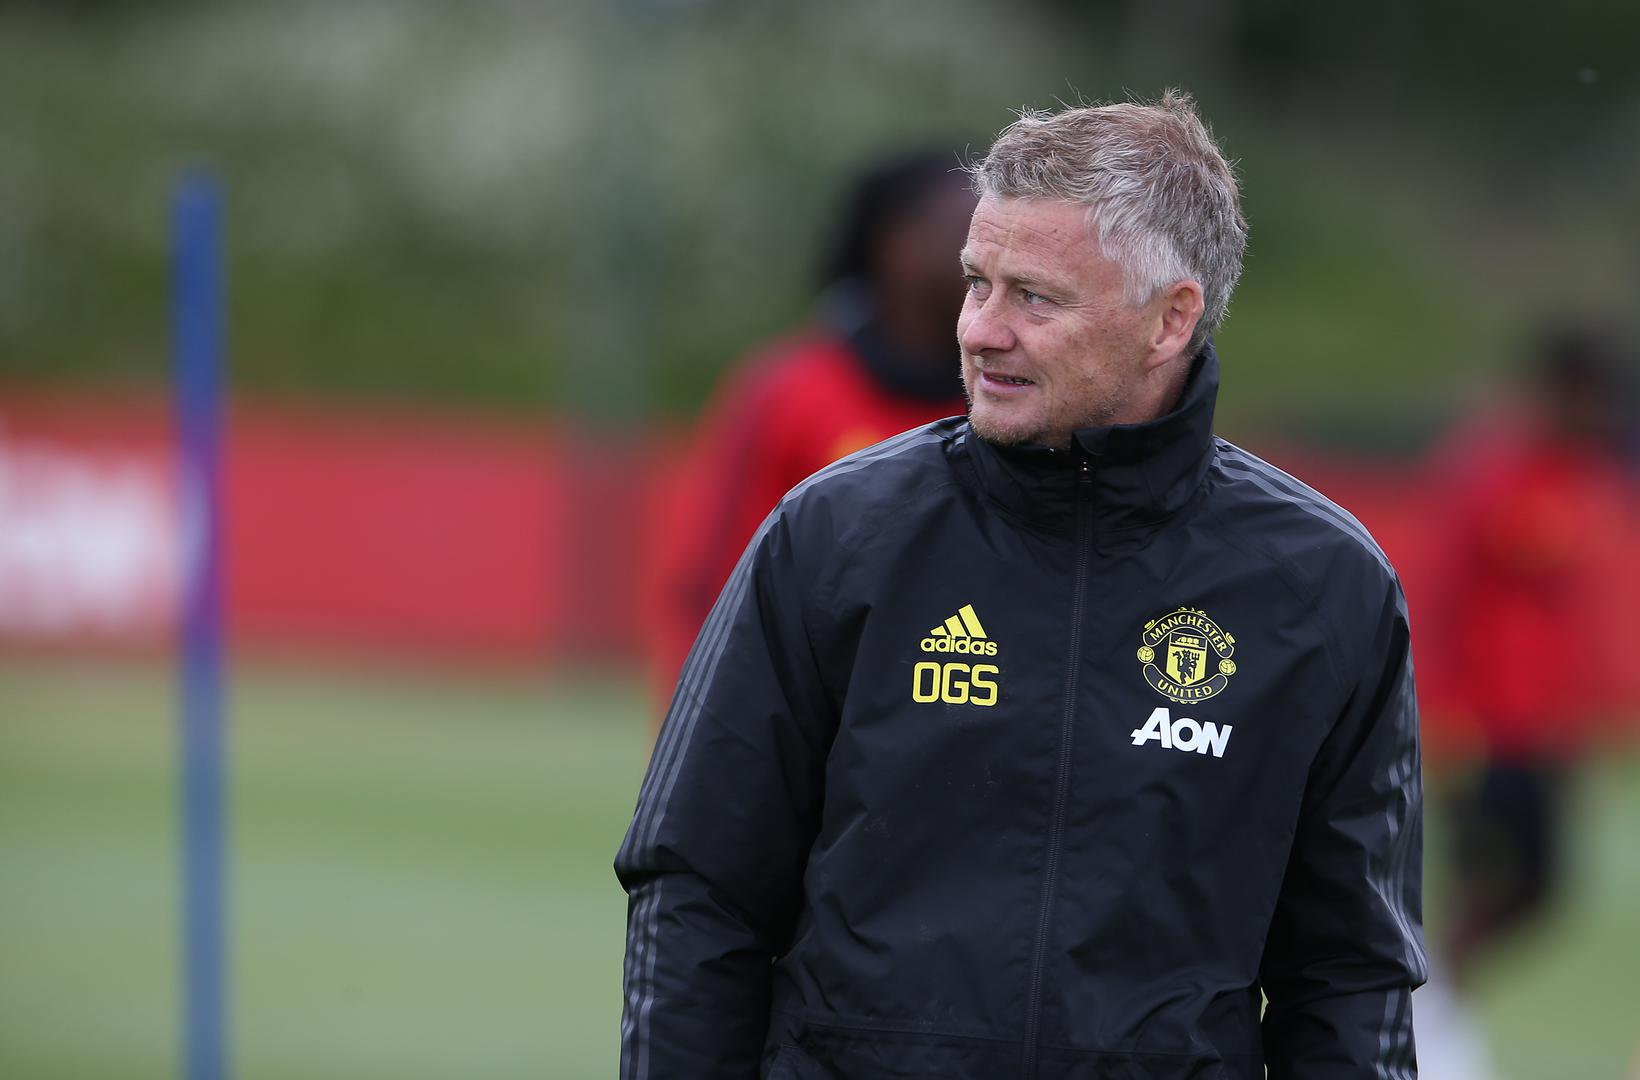 Ole Gunnar Solskjaer in training.